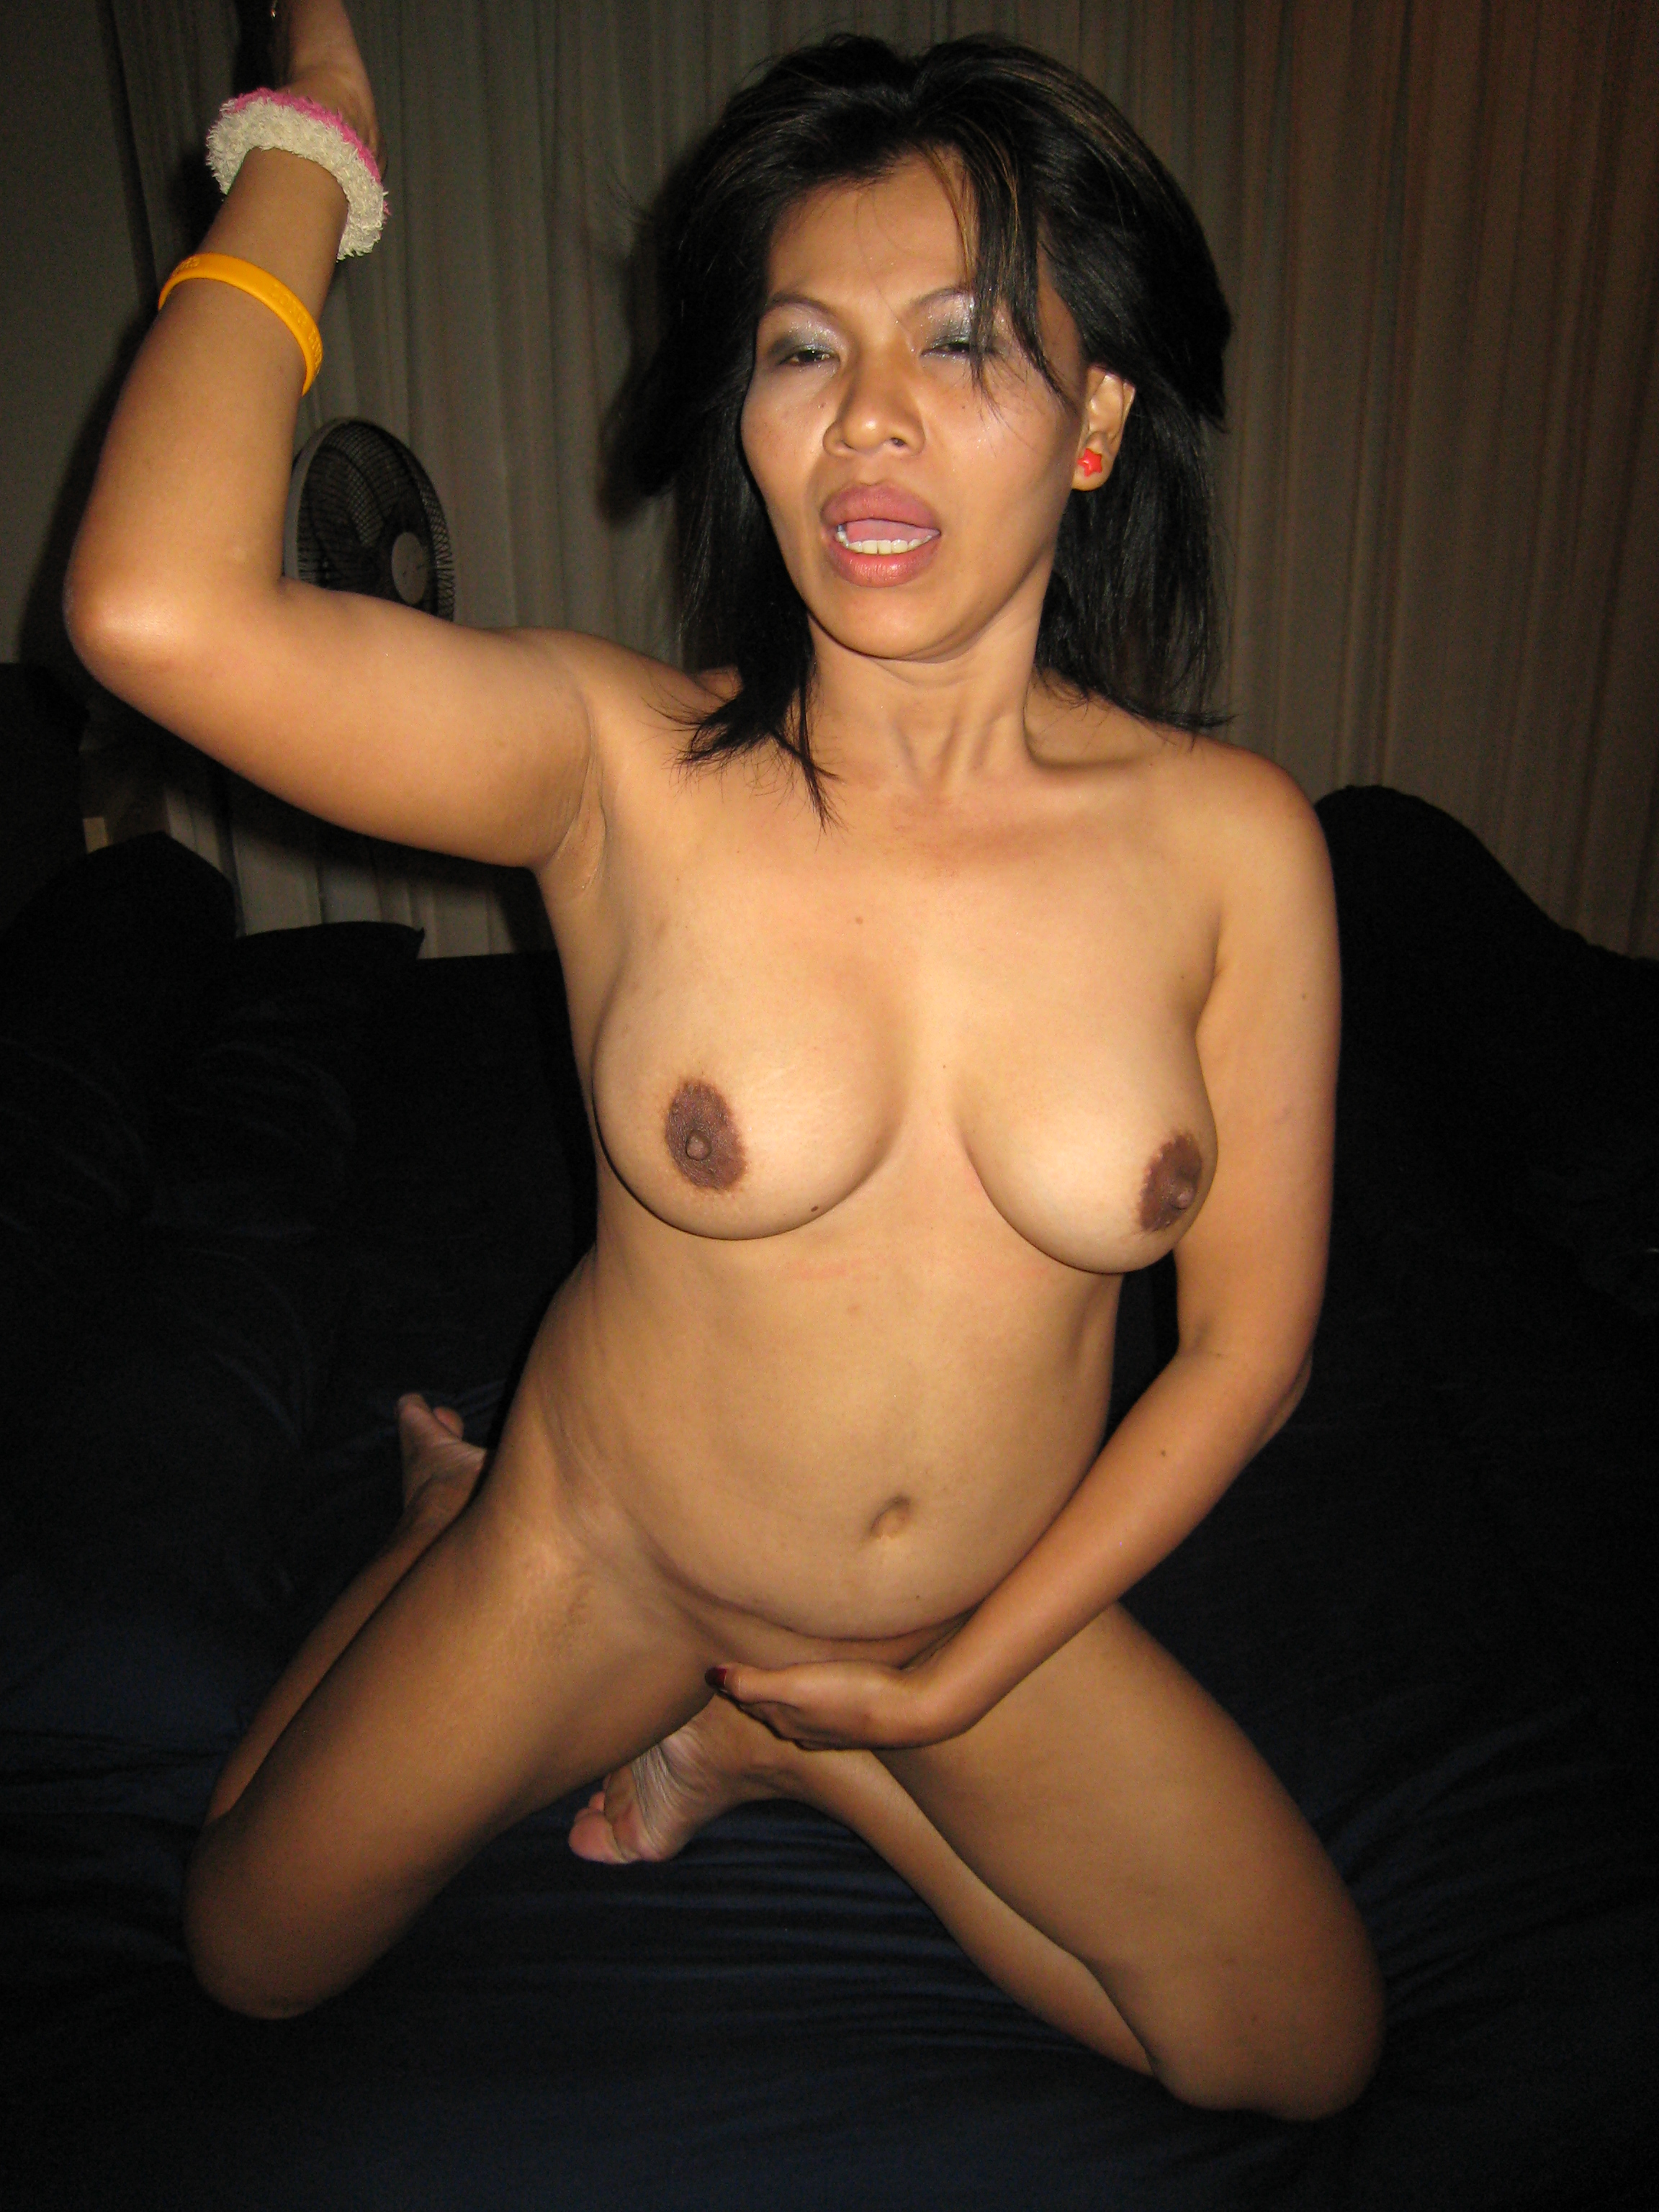 austin-mature-picture-of-a-sex-nude-thailand-female